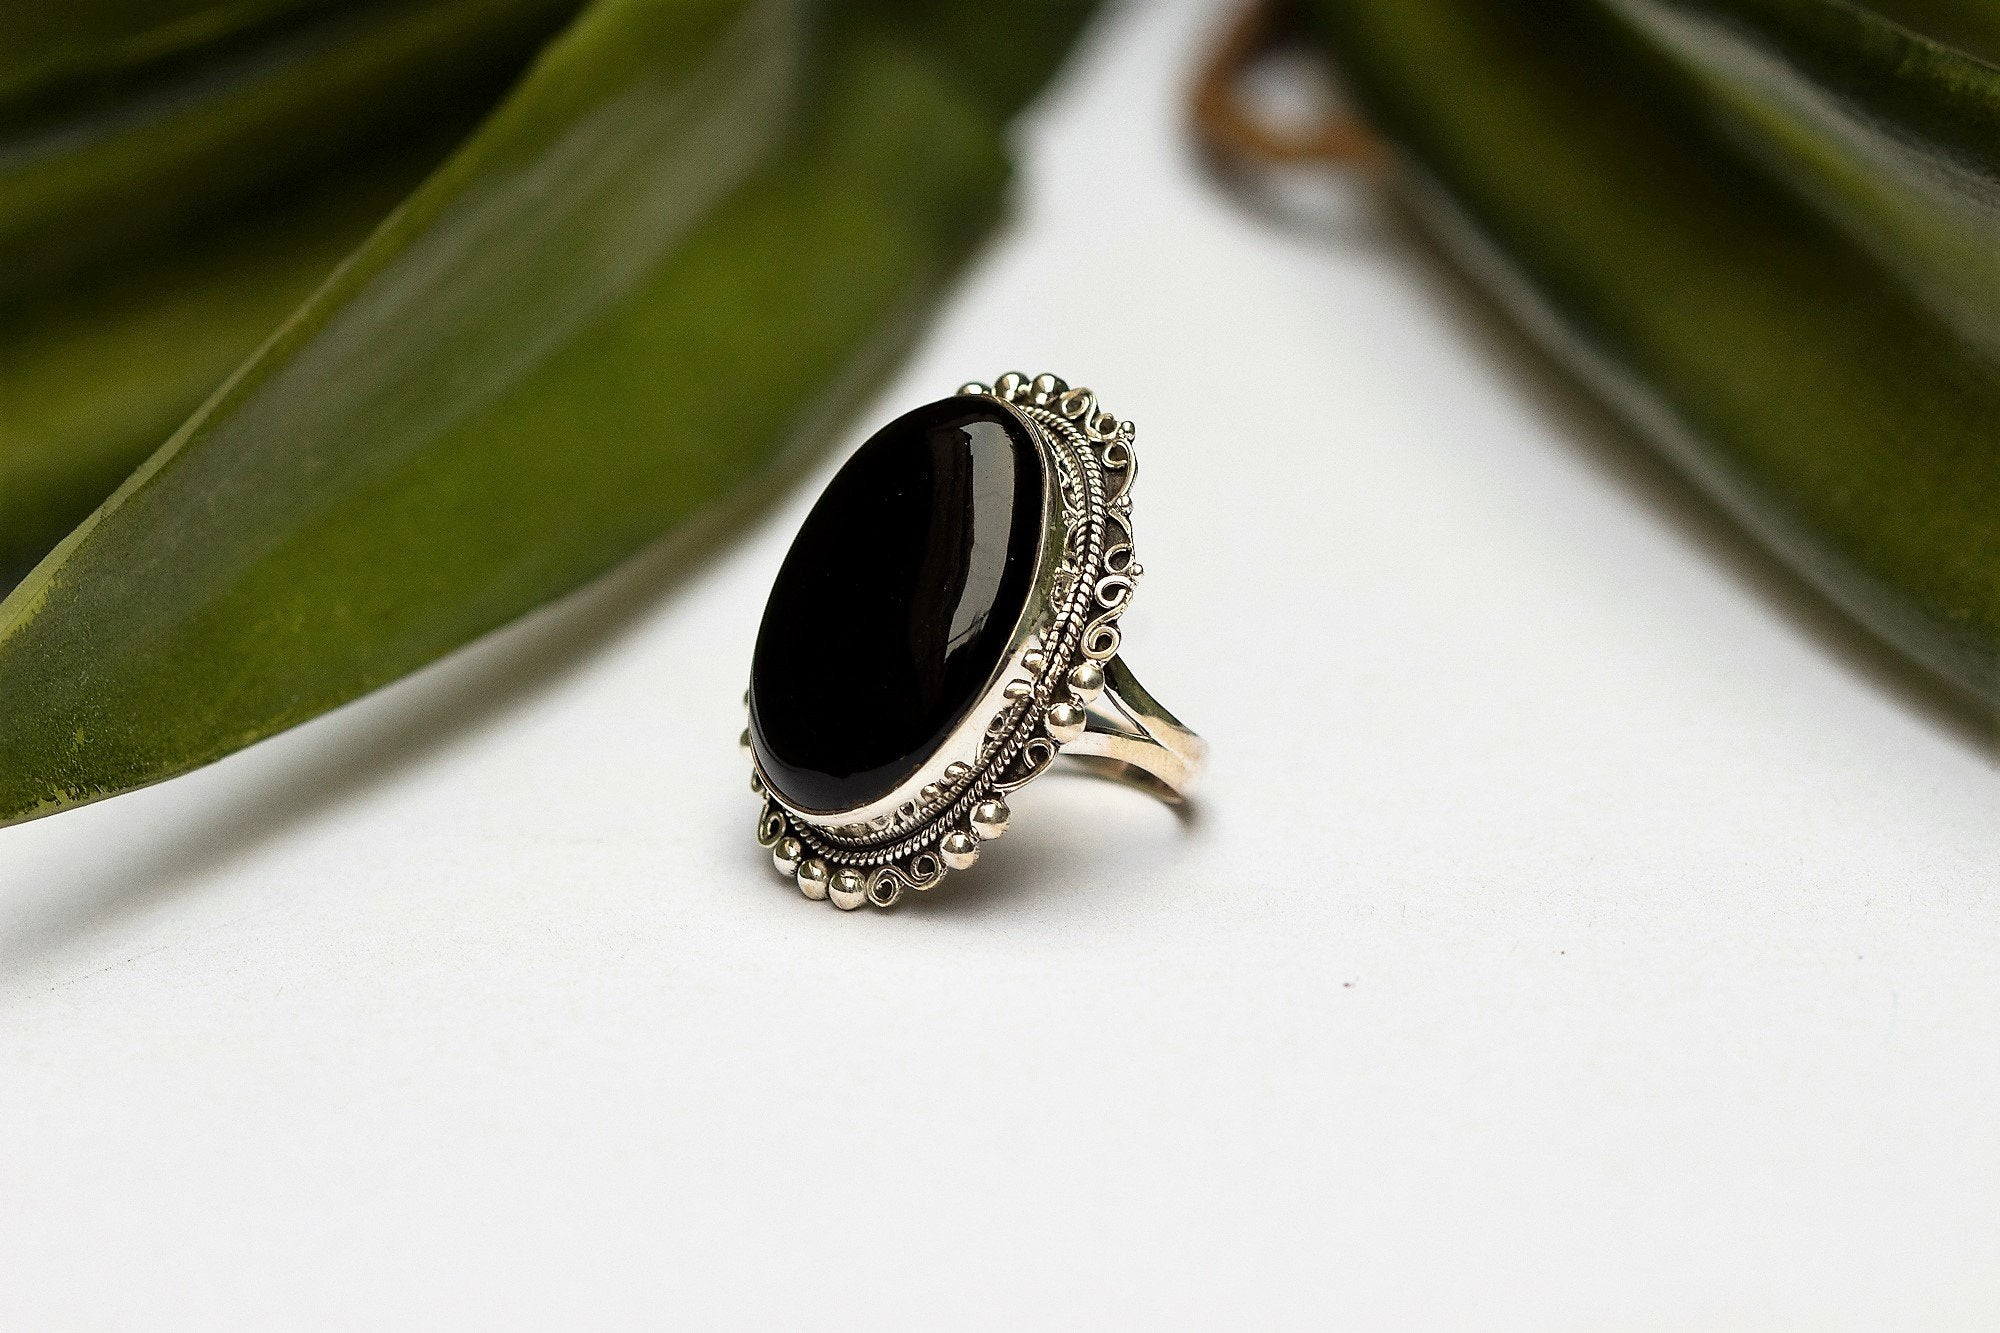 Black Onyx Ring 925 Sterling Silver AR-1012 - Its Ambra